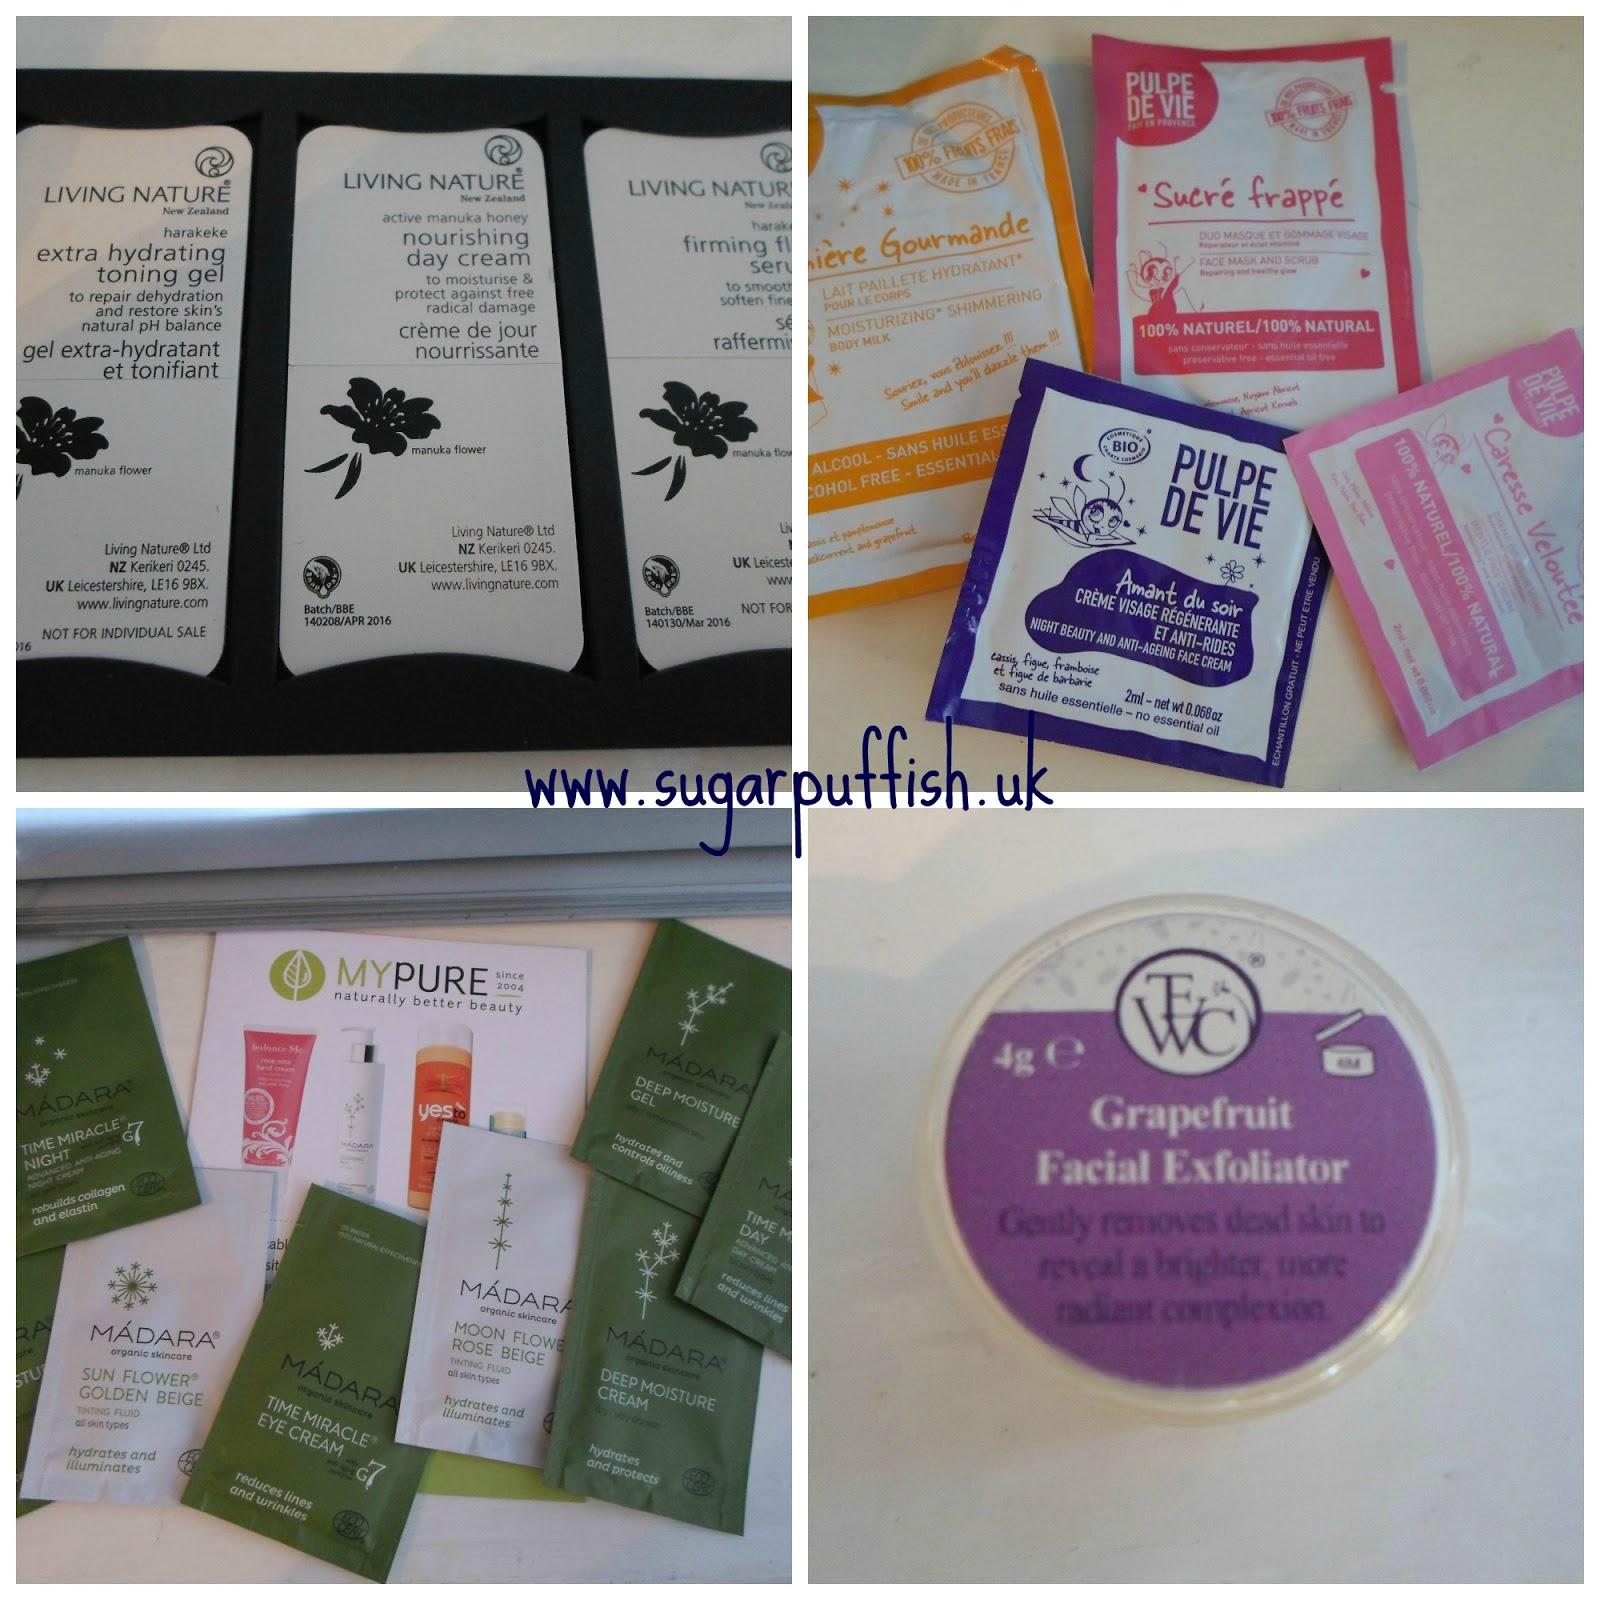 Samples - Living Nature, Pulpe De Vie, TEWC, Madara, Herbfarmacy